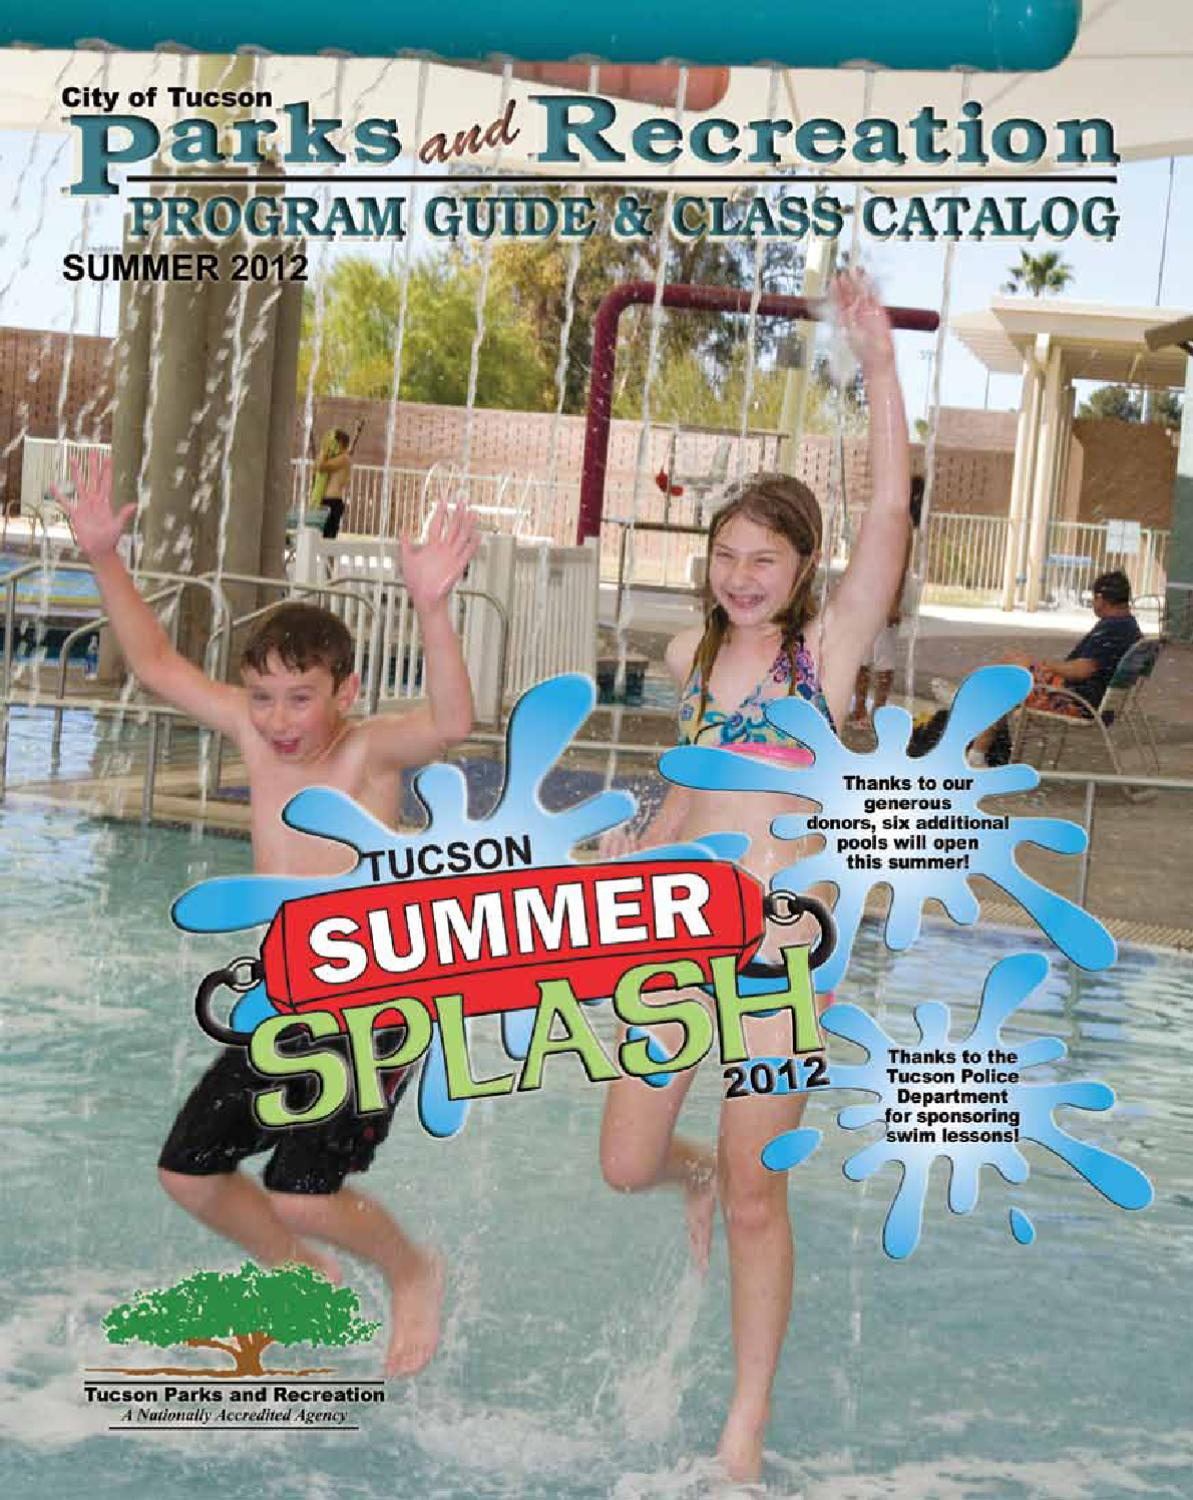 tucson parks and recreation program guide by Tucson Parks and Recreation  Issuu